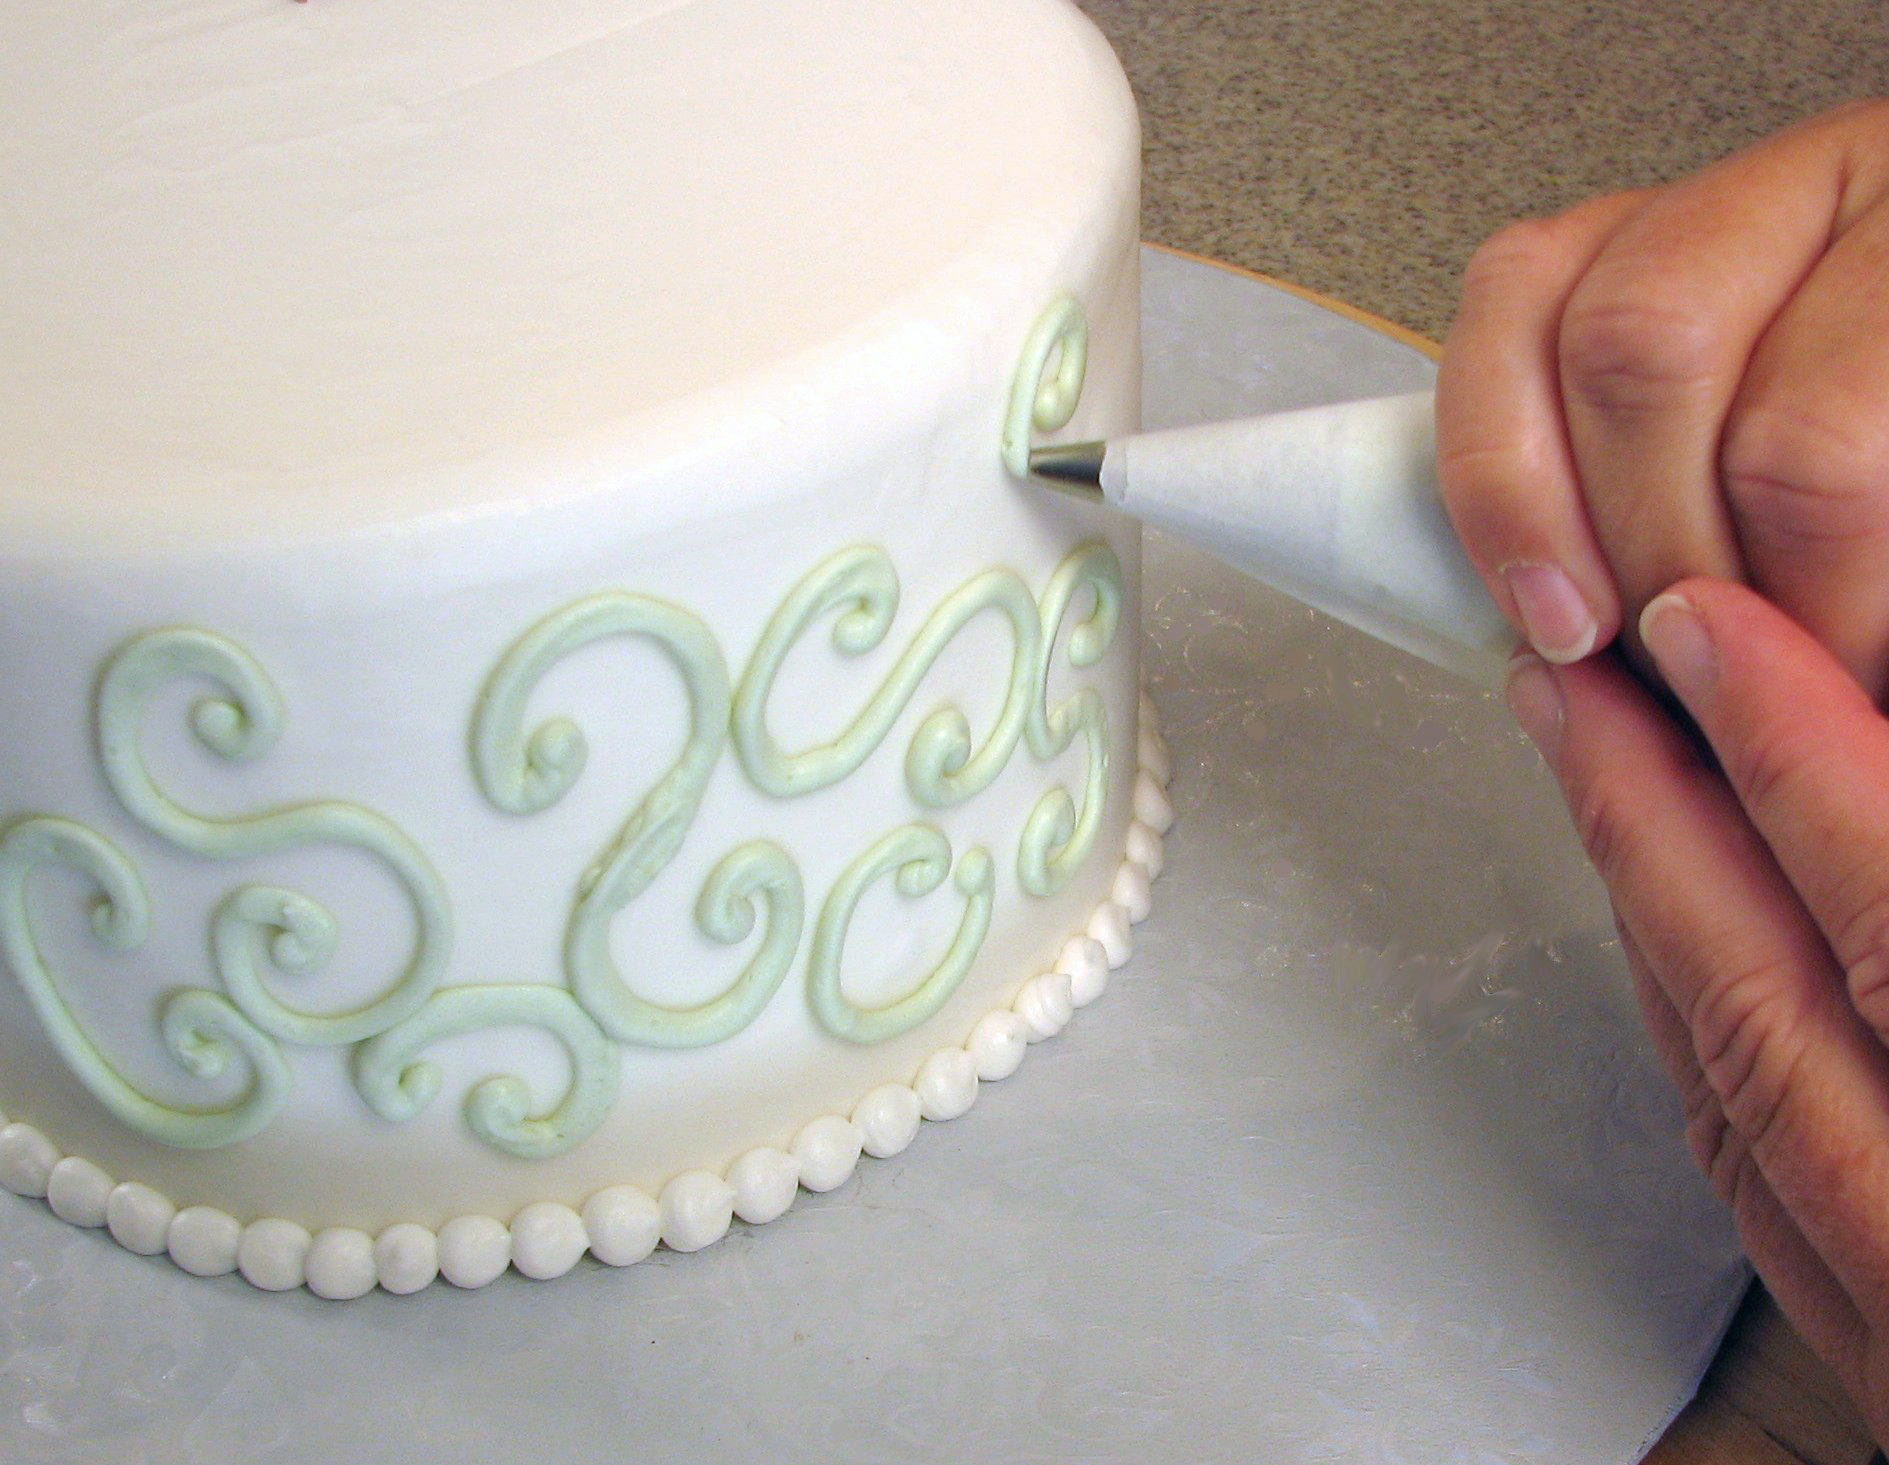 Cake Design Decoration : Cake decorating - Wikipedia